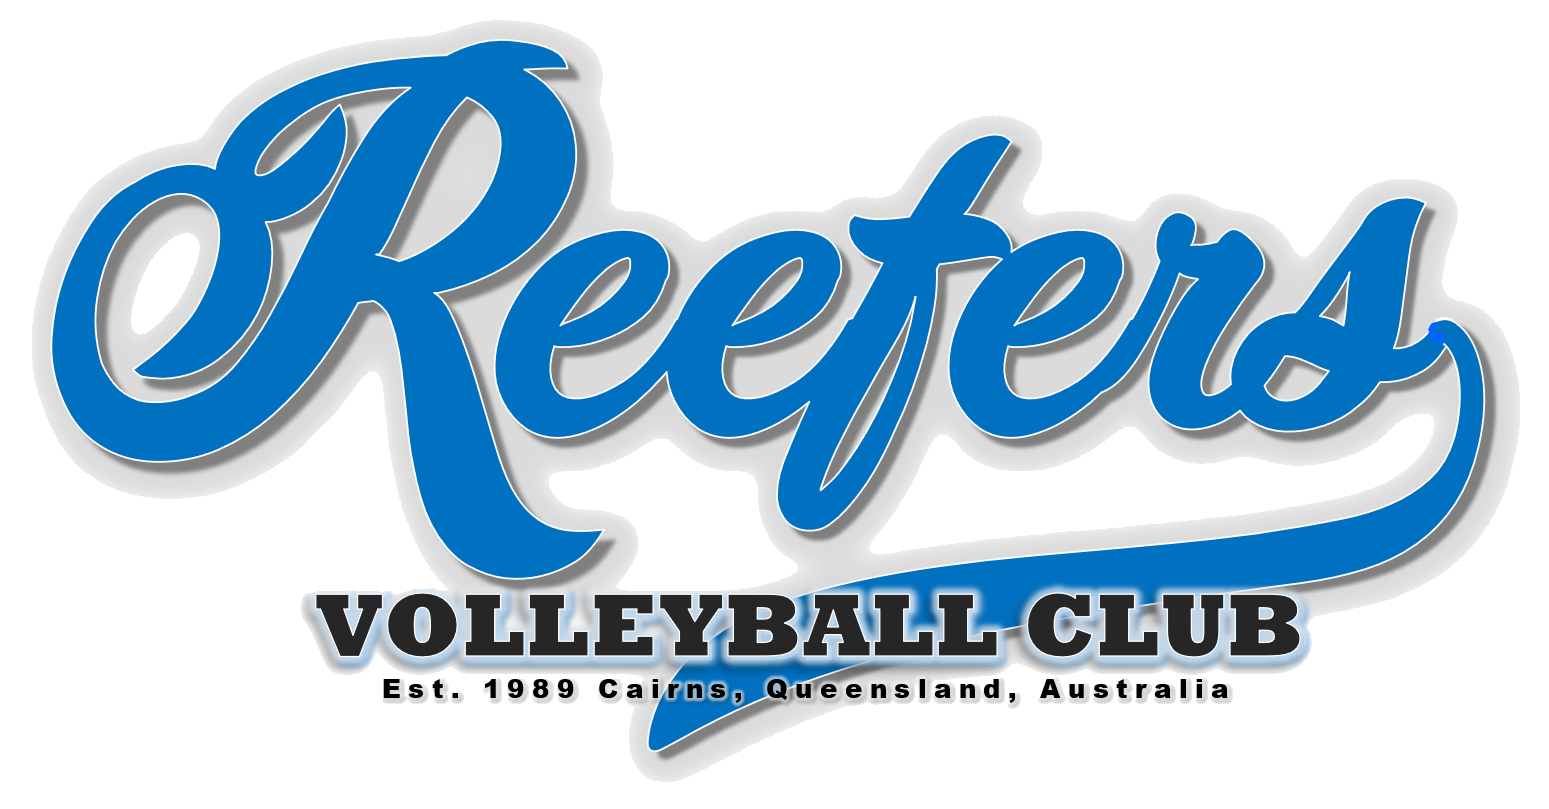 Cairns Volleyball Reefers